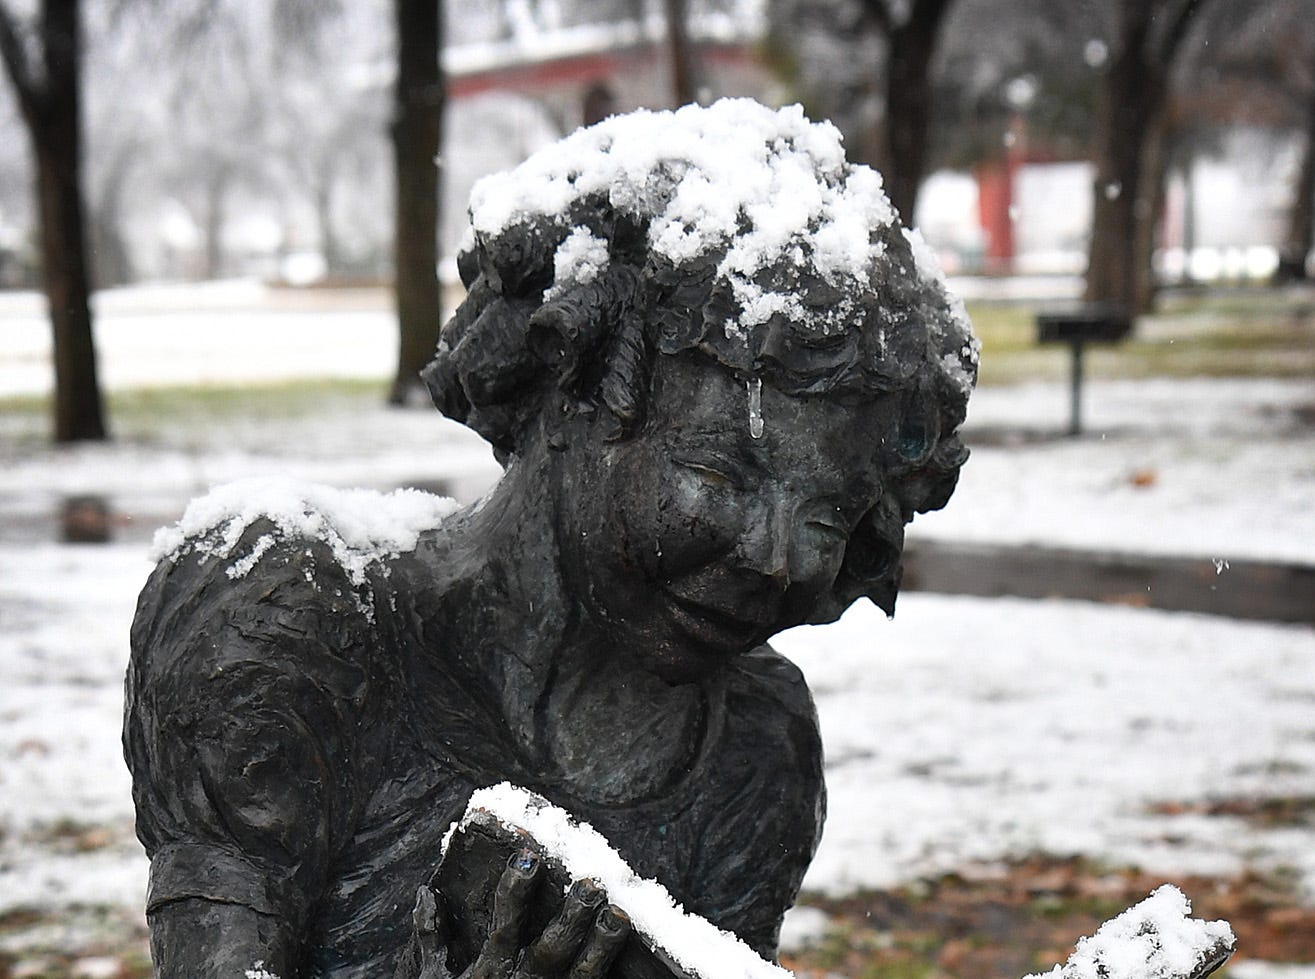 A cold, bronze statue looks even colder with snow on it Thursday afternoon.